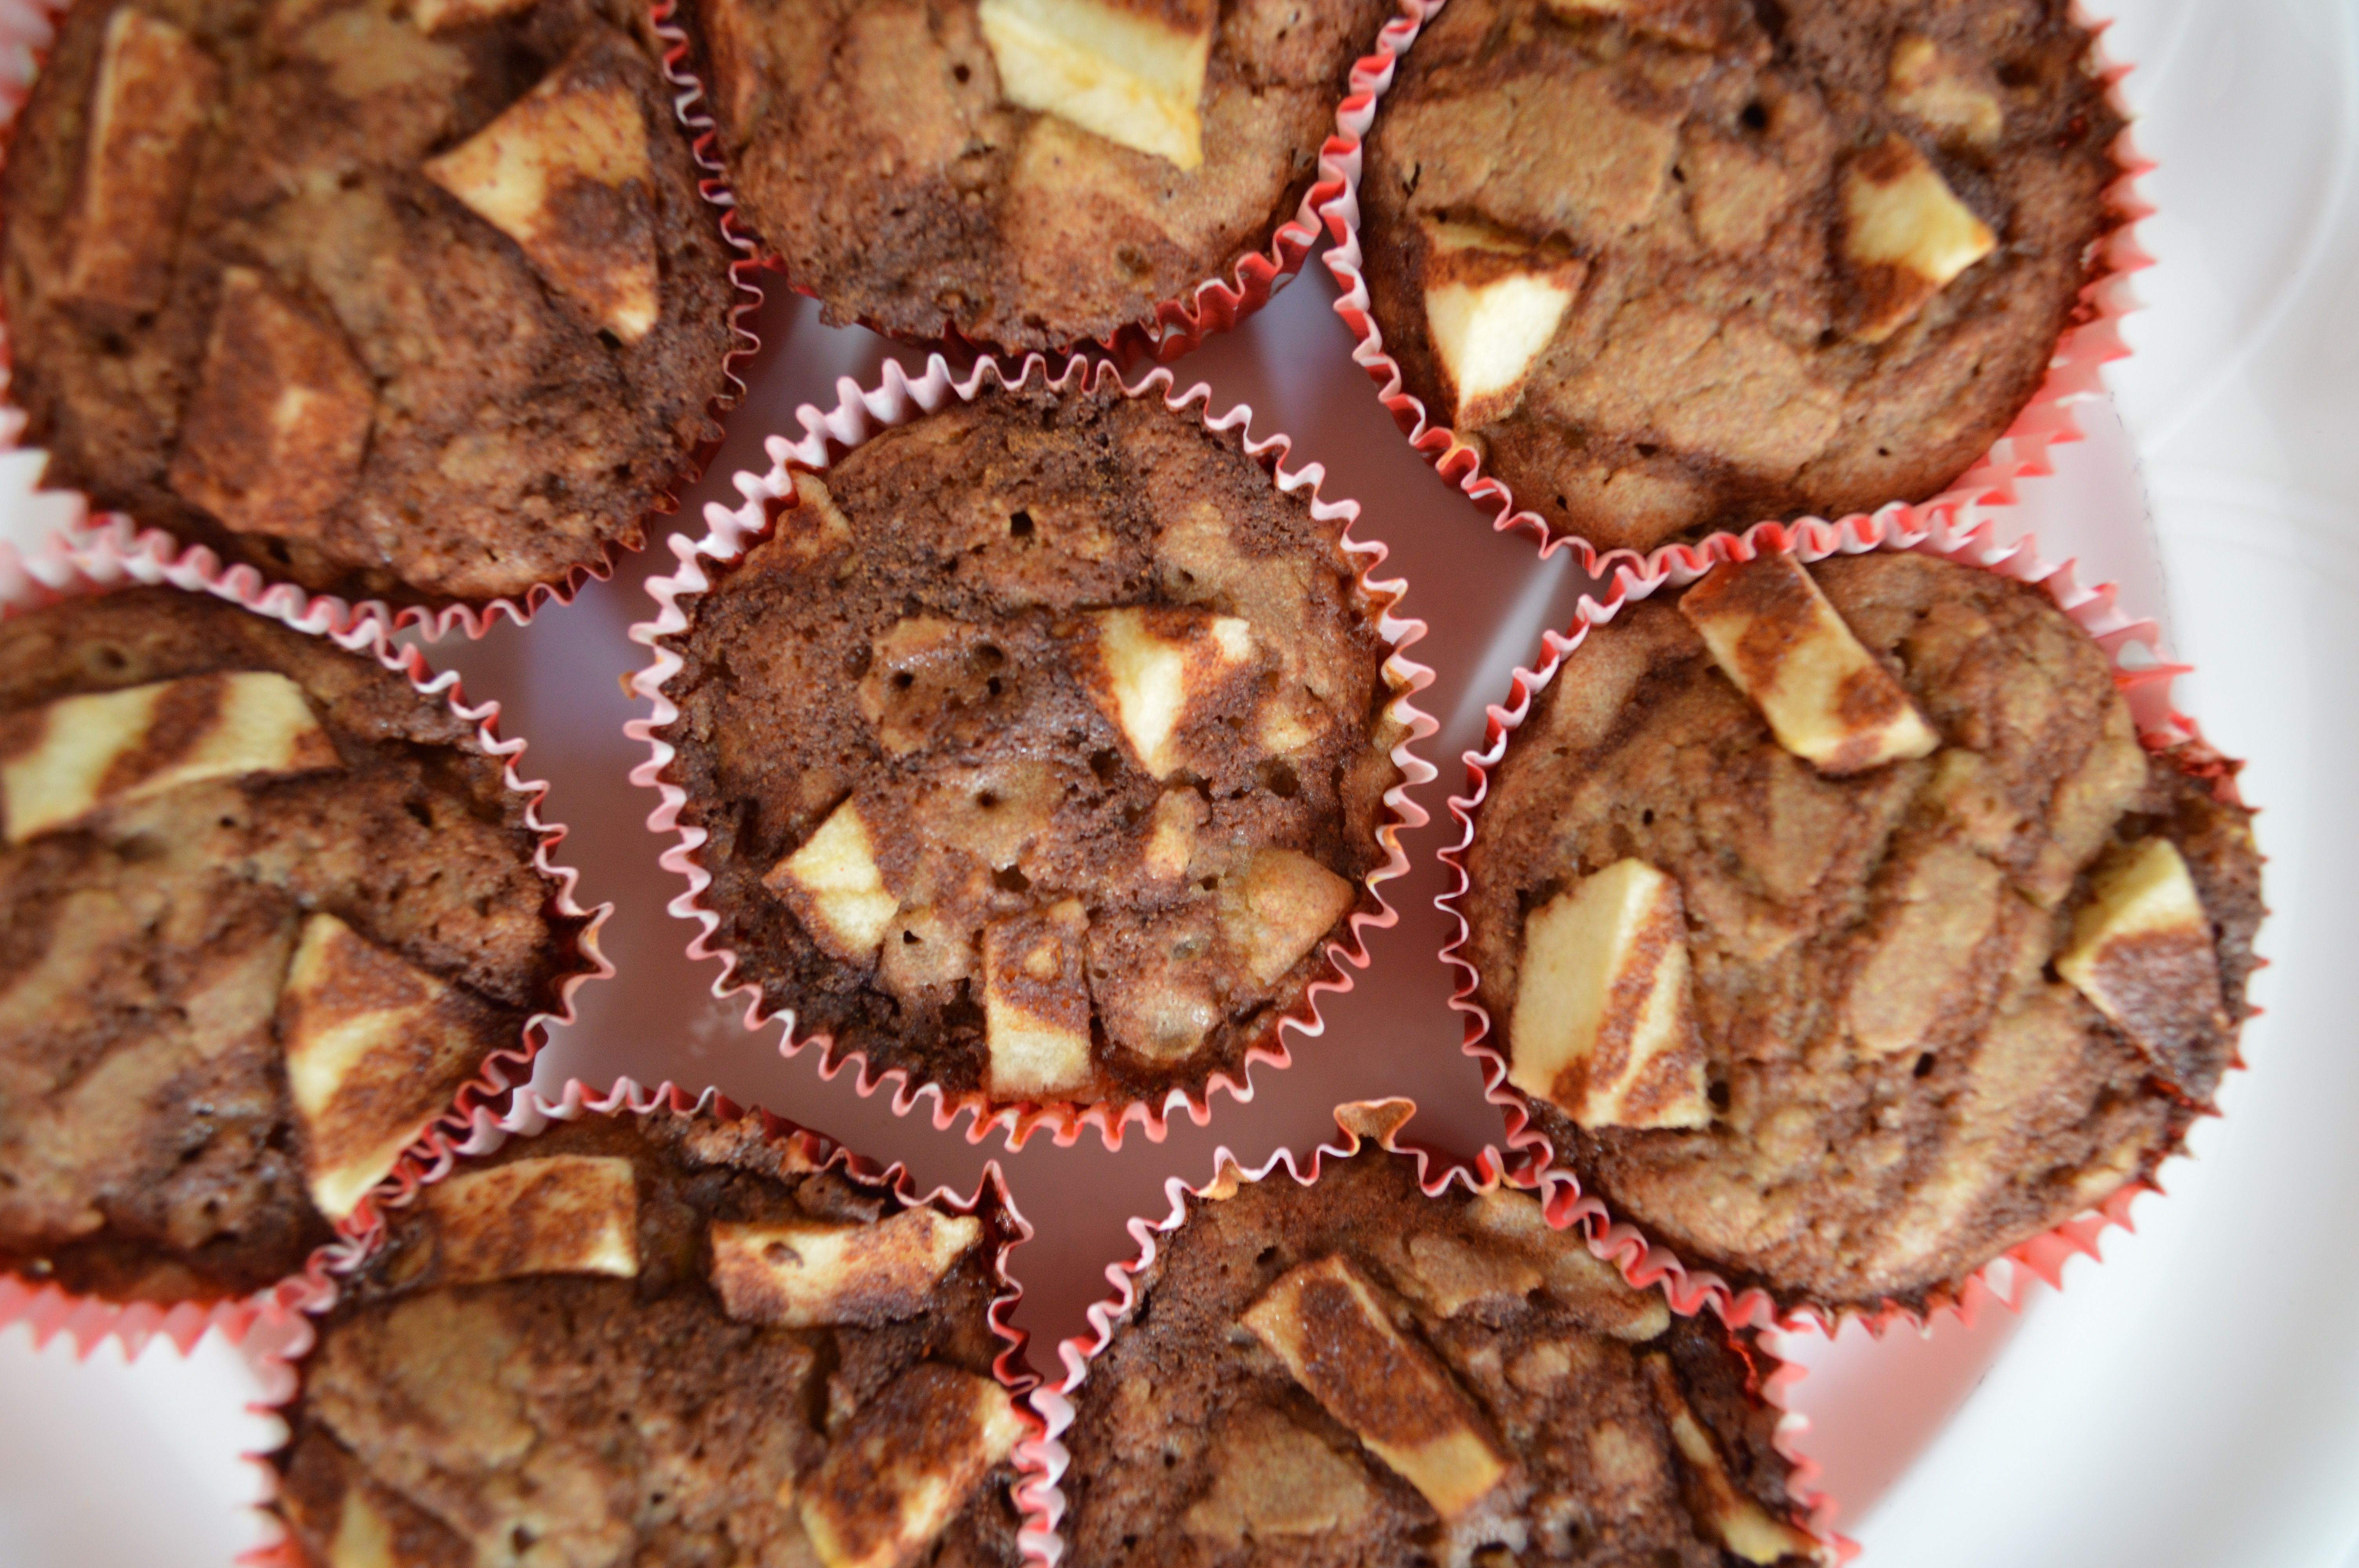 Apples + cinnamon is a great combination, so I decided to make muffins using these 2 ingredients!  Apples are rich in antioxidants + cinnamon is thought to be one of the healthiest spices on the planet; it is rich in antioxidants, helps with digestion, + has a positive impact on blood sugar levels.